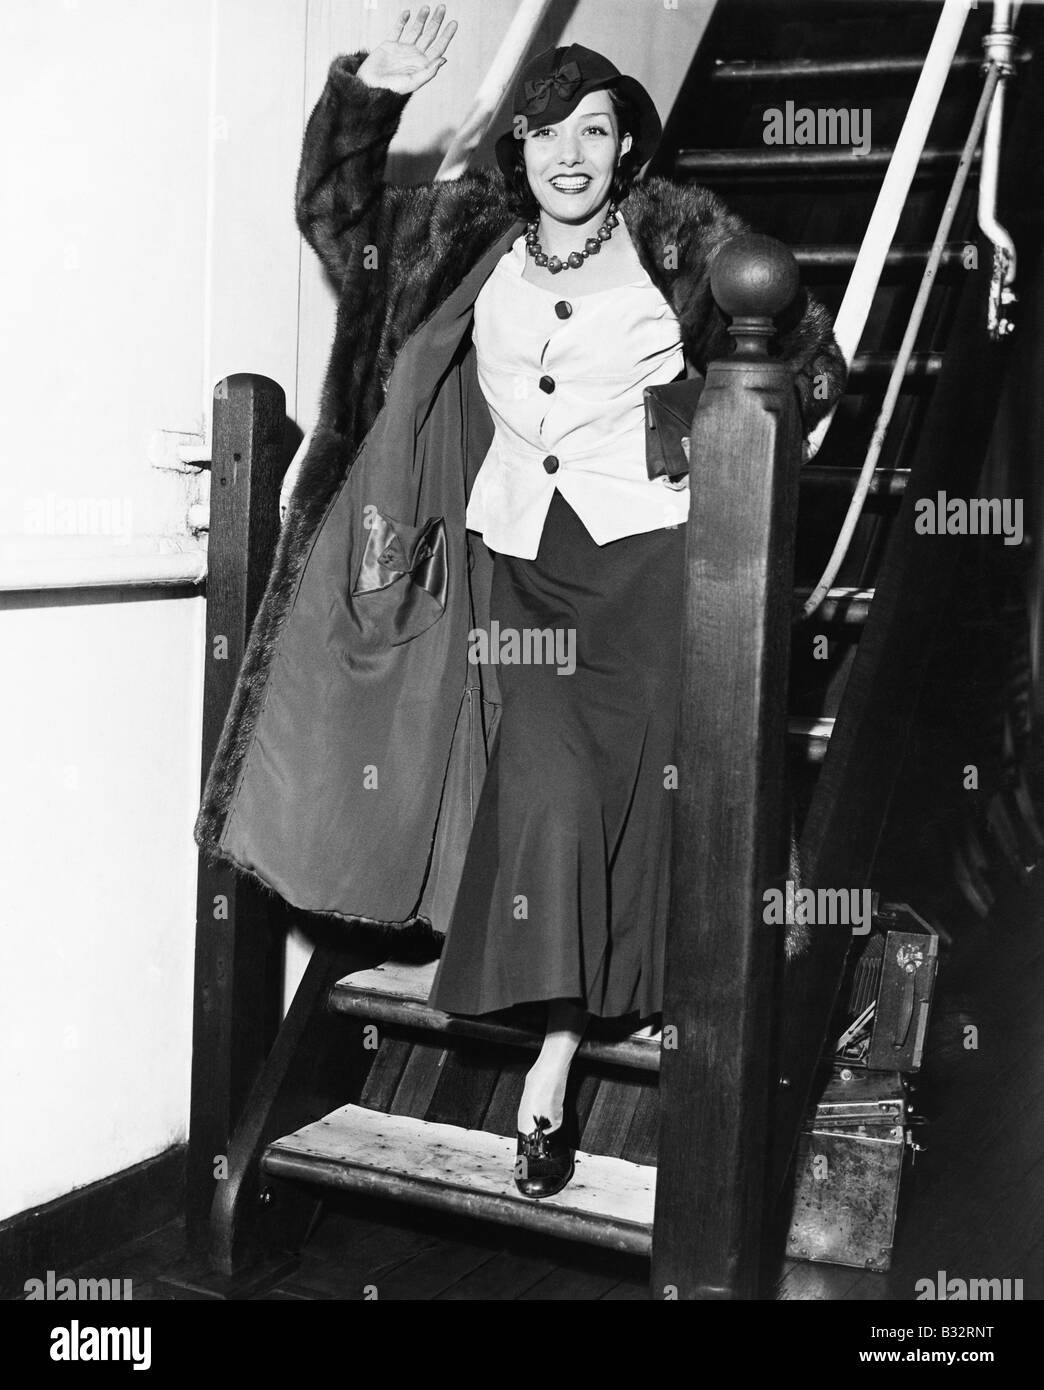 Young woman waving on a staircase and smiling Stock Photo